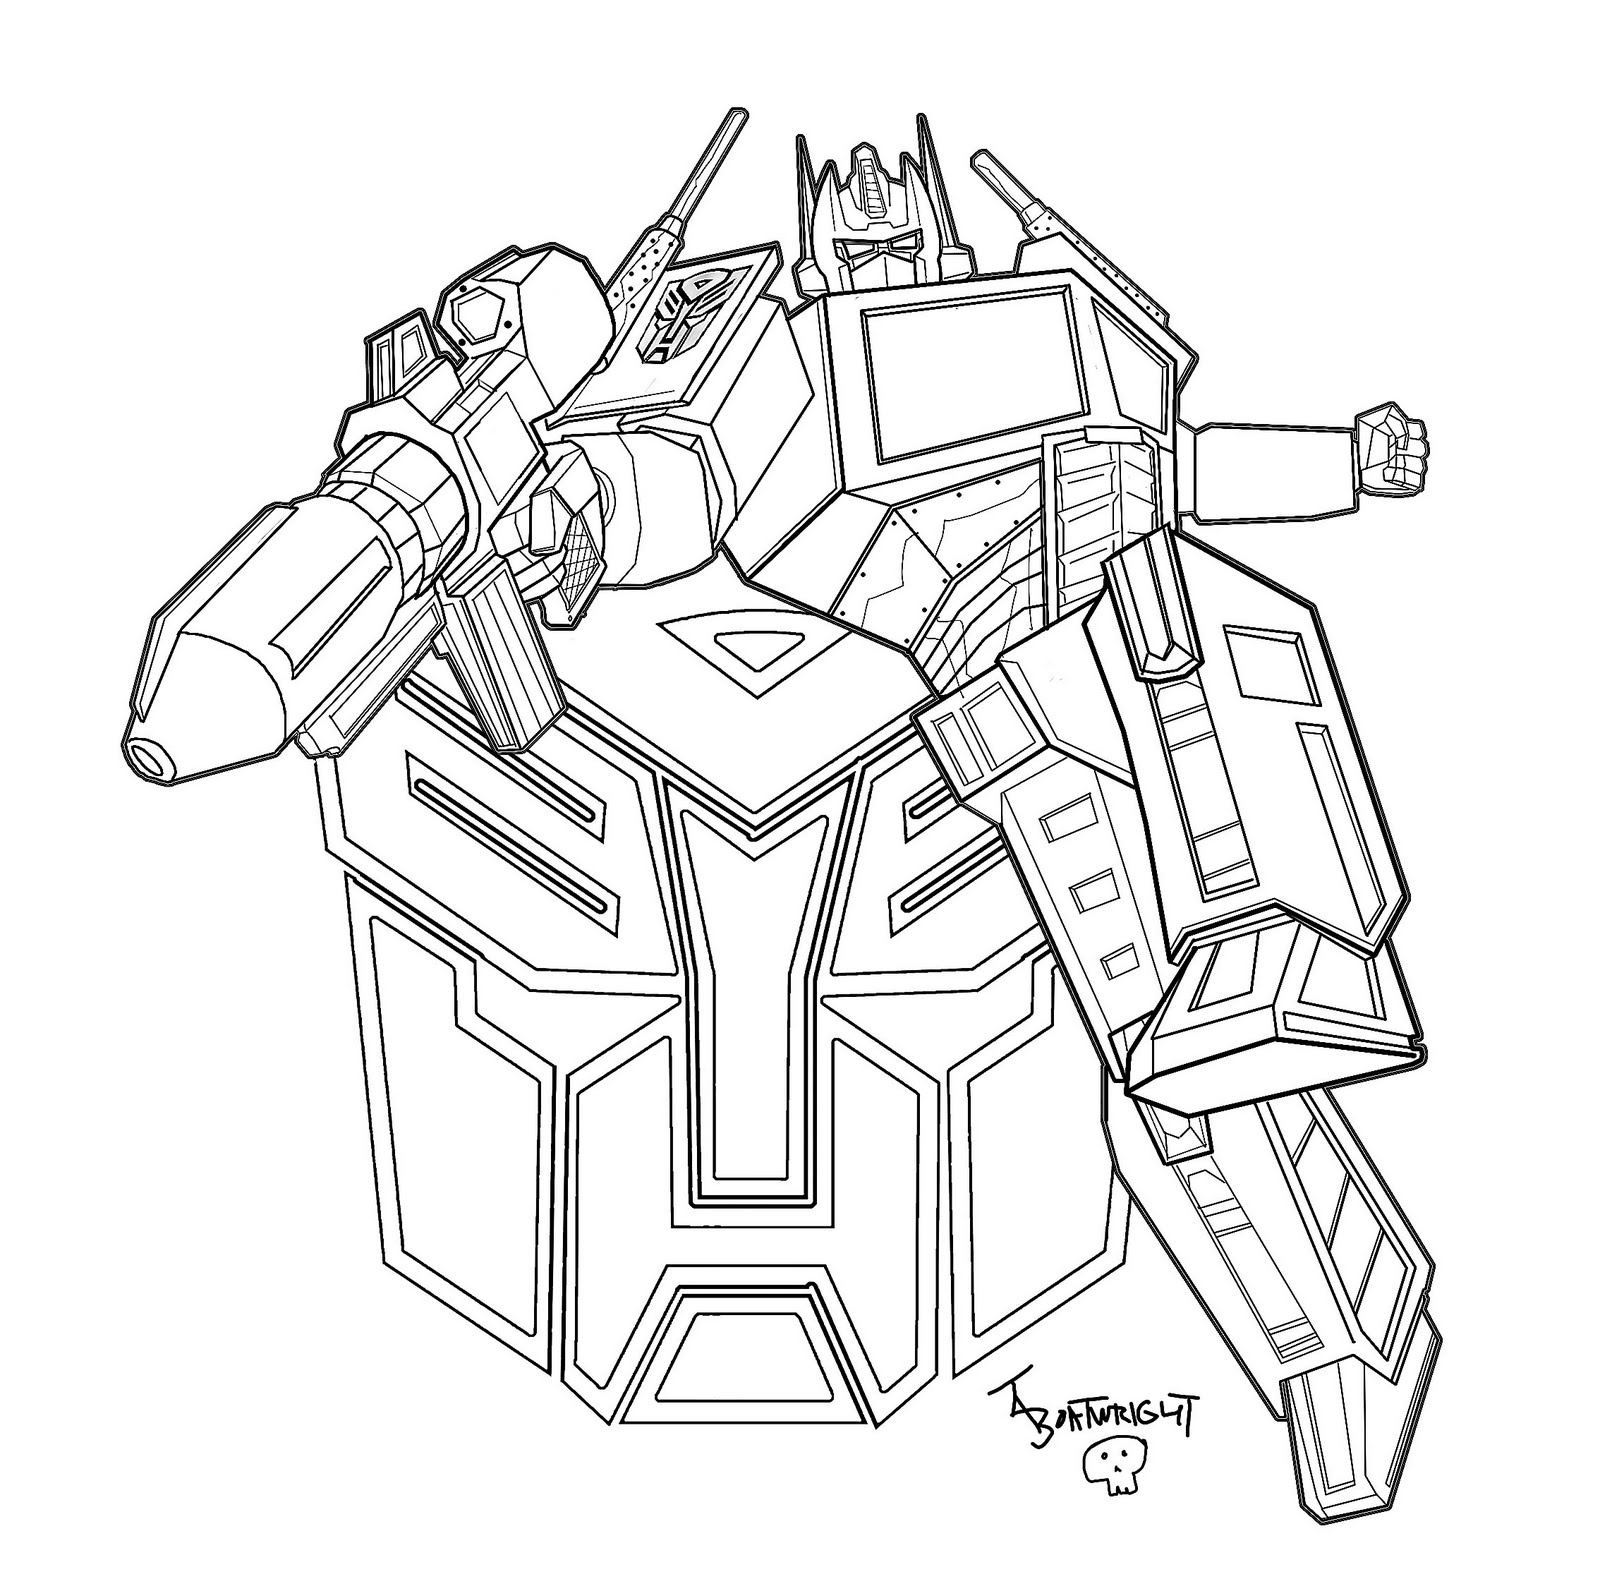 optimus prime free coloring pages get this optimus prime coloring page printable for kids free pages prime optimus coloring